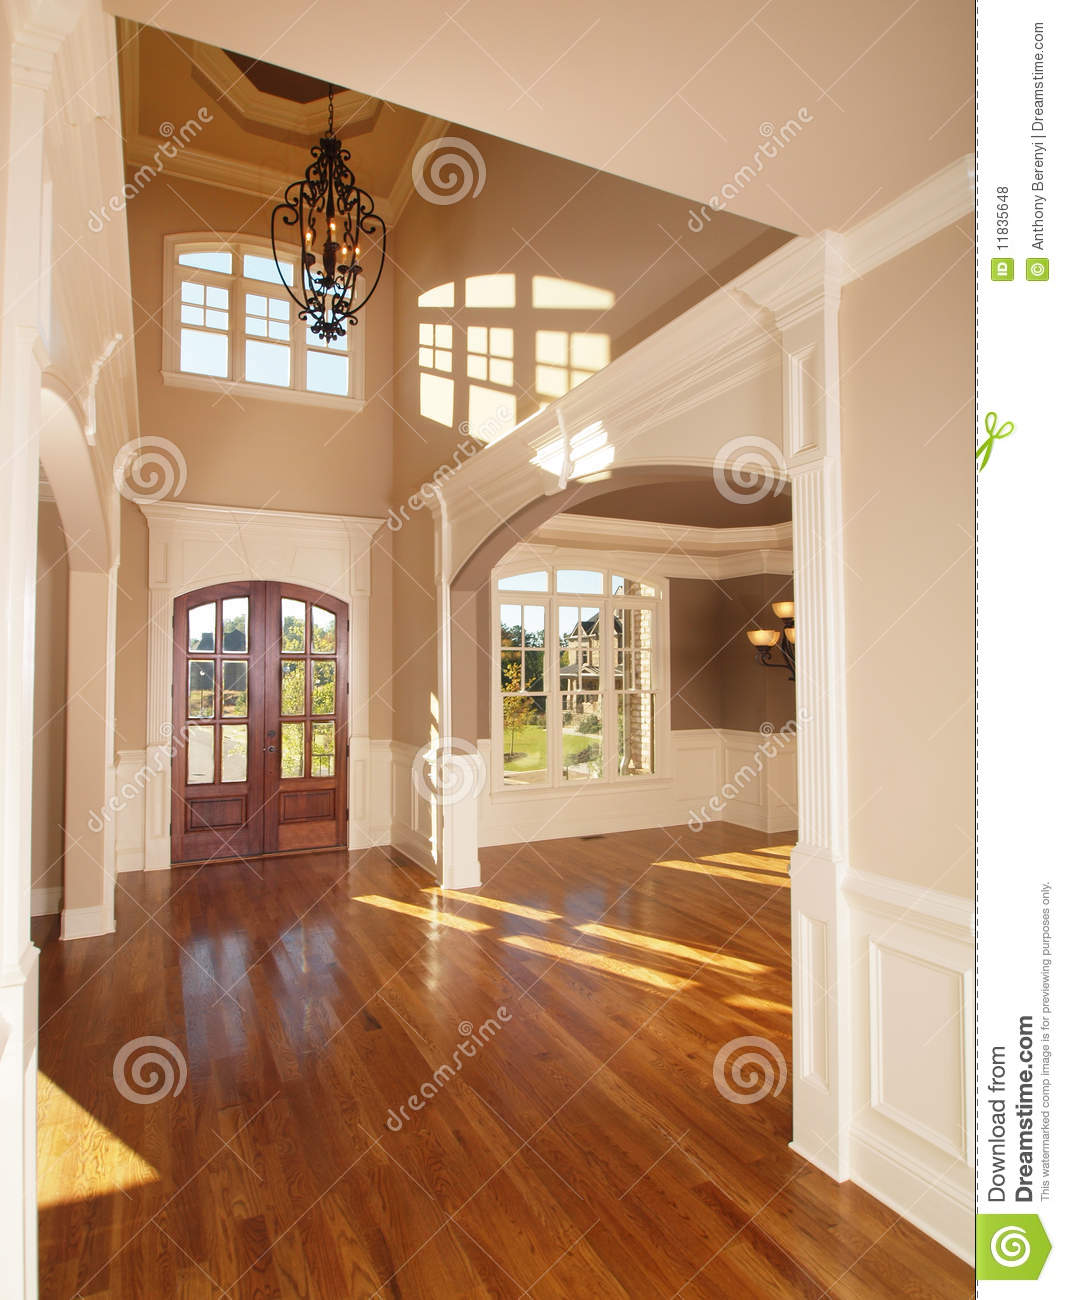 Luxury Home Interior: Model Luxury Home Interior Front Entrance Archway Royalty